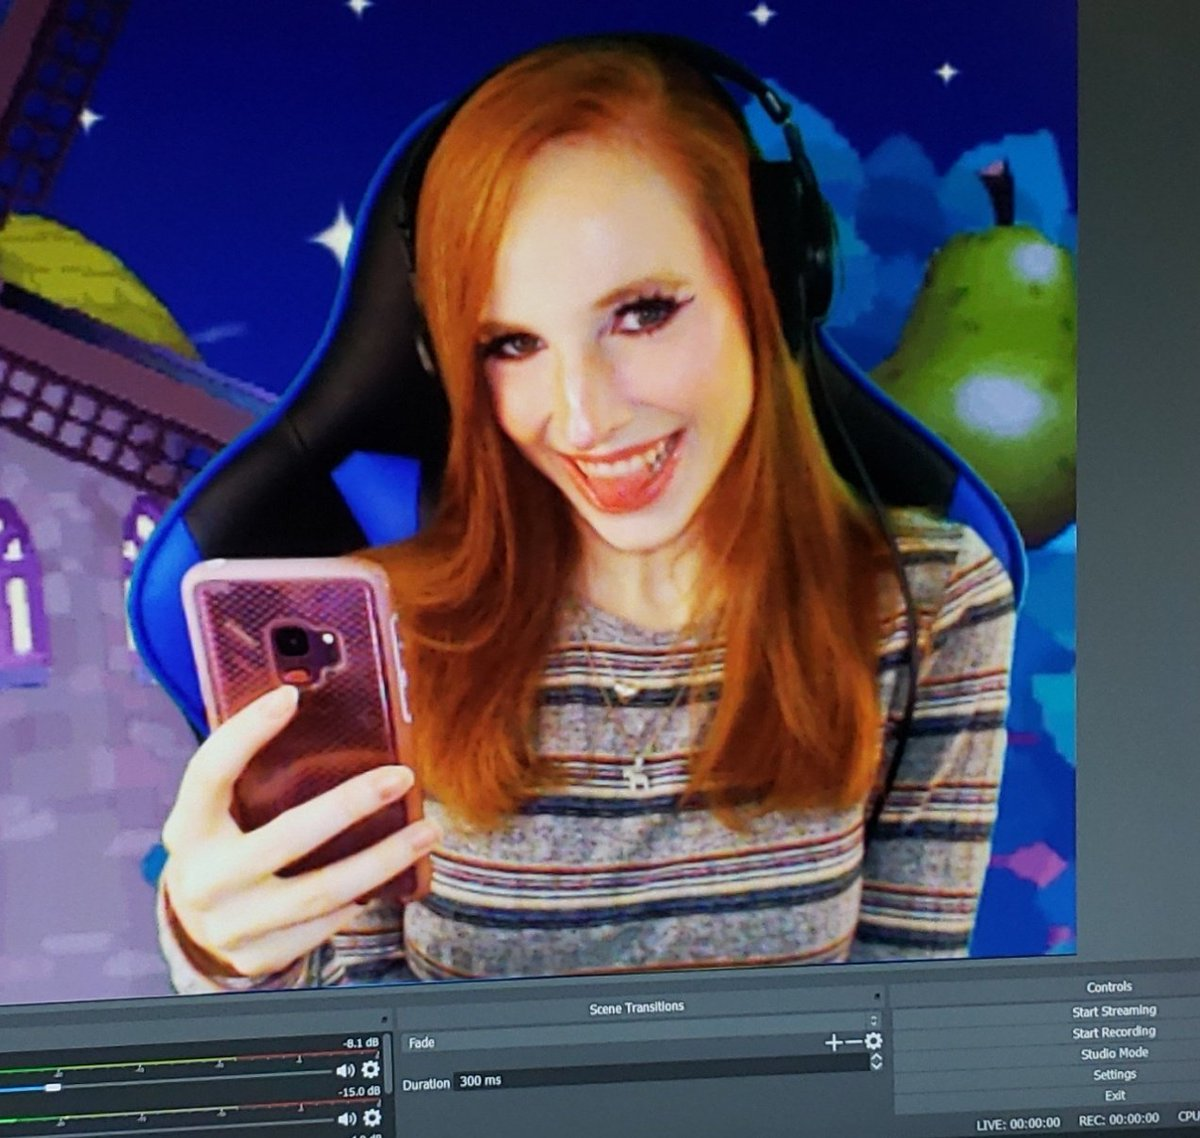 tayraeiscray - today's stream is sponsored by raid: shadow legends! 💖 download for free on pc here 👉   come join for a fun time 😌  #sponsored